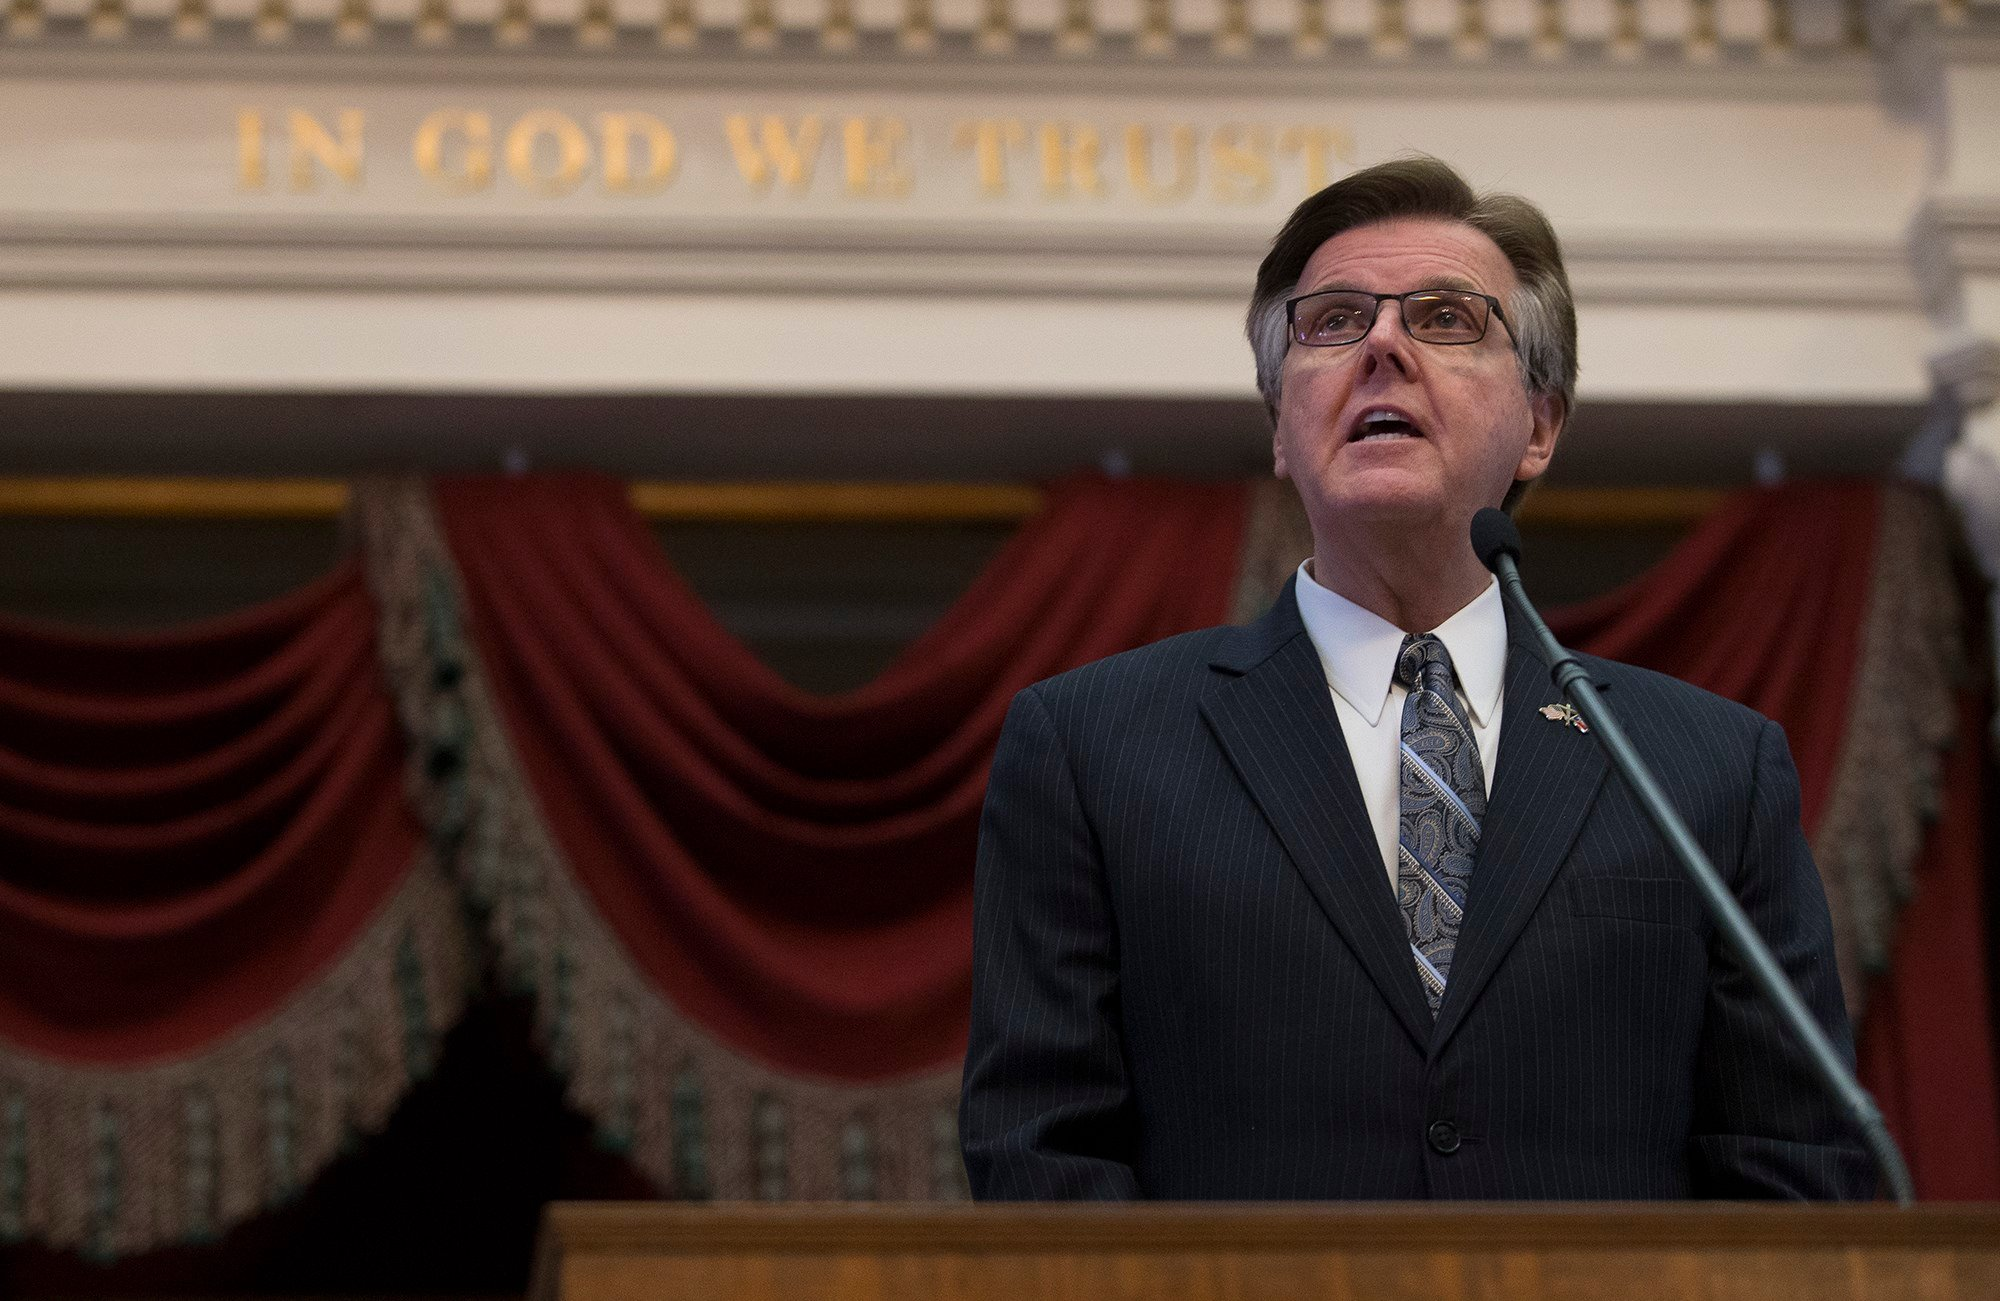 Texas Lt. Gov. Dan Patrick speaks before the State of the State address during a joint session of the House and Senate, Tuesday, Jan. 31, 2017, at the Texas Capitol in Austin, Texas. (AP Photo/Stephen Spillman)